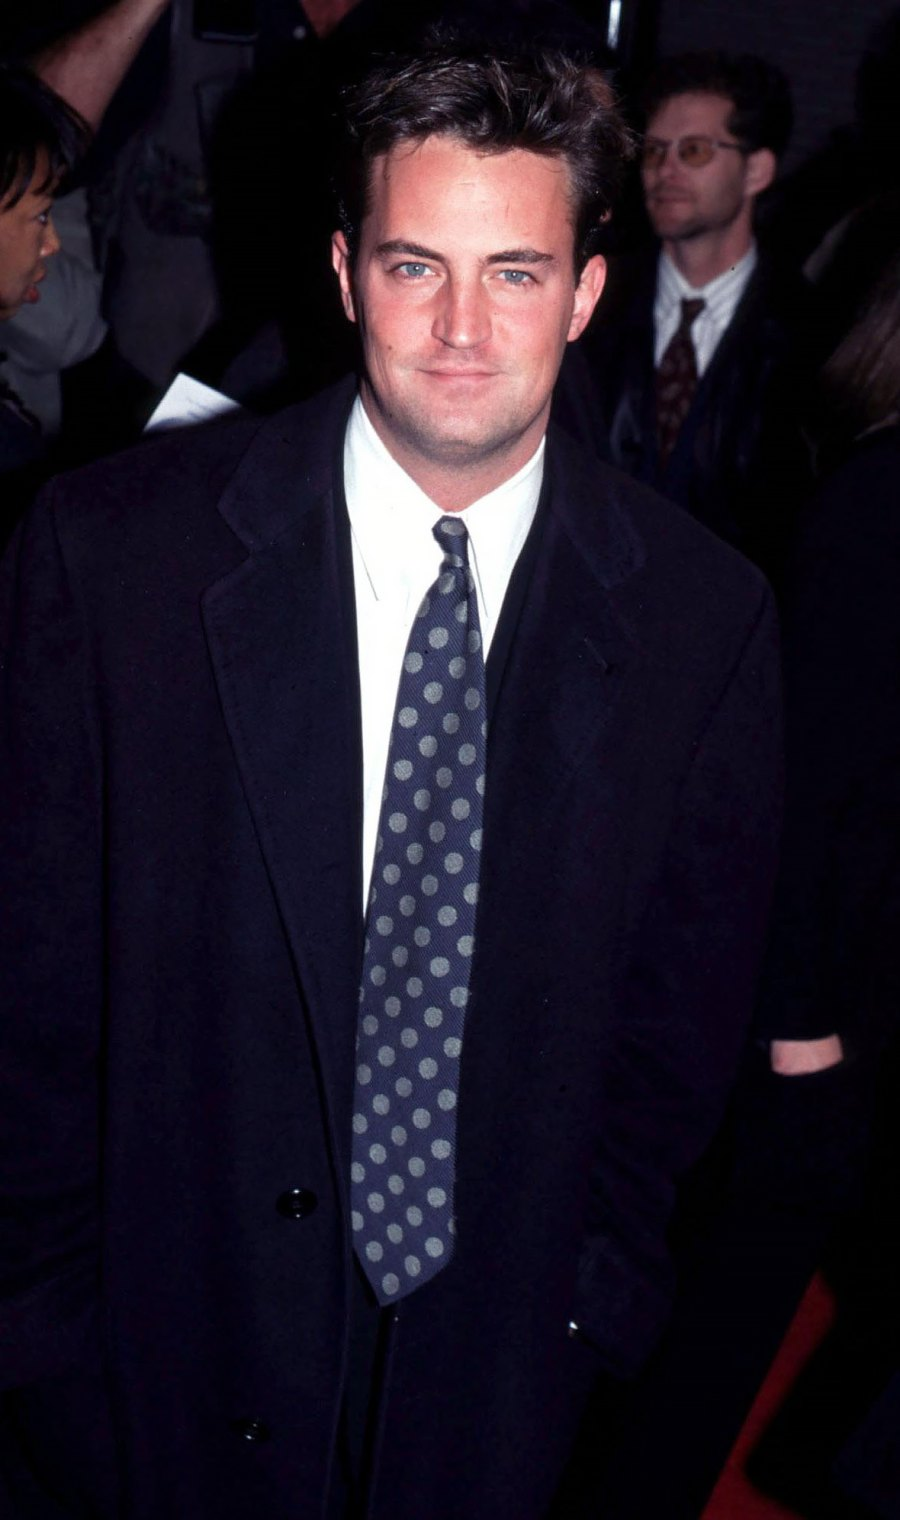 Matthew Perry's Ups and Downs Through the Years: A Timeline